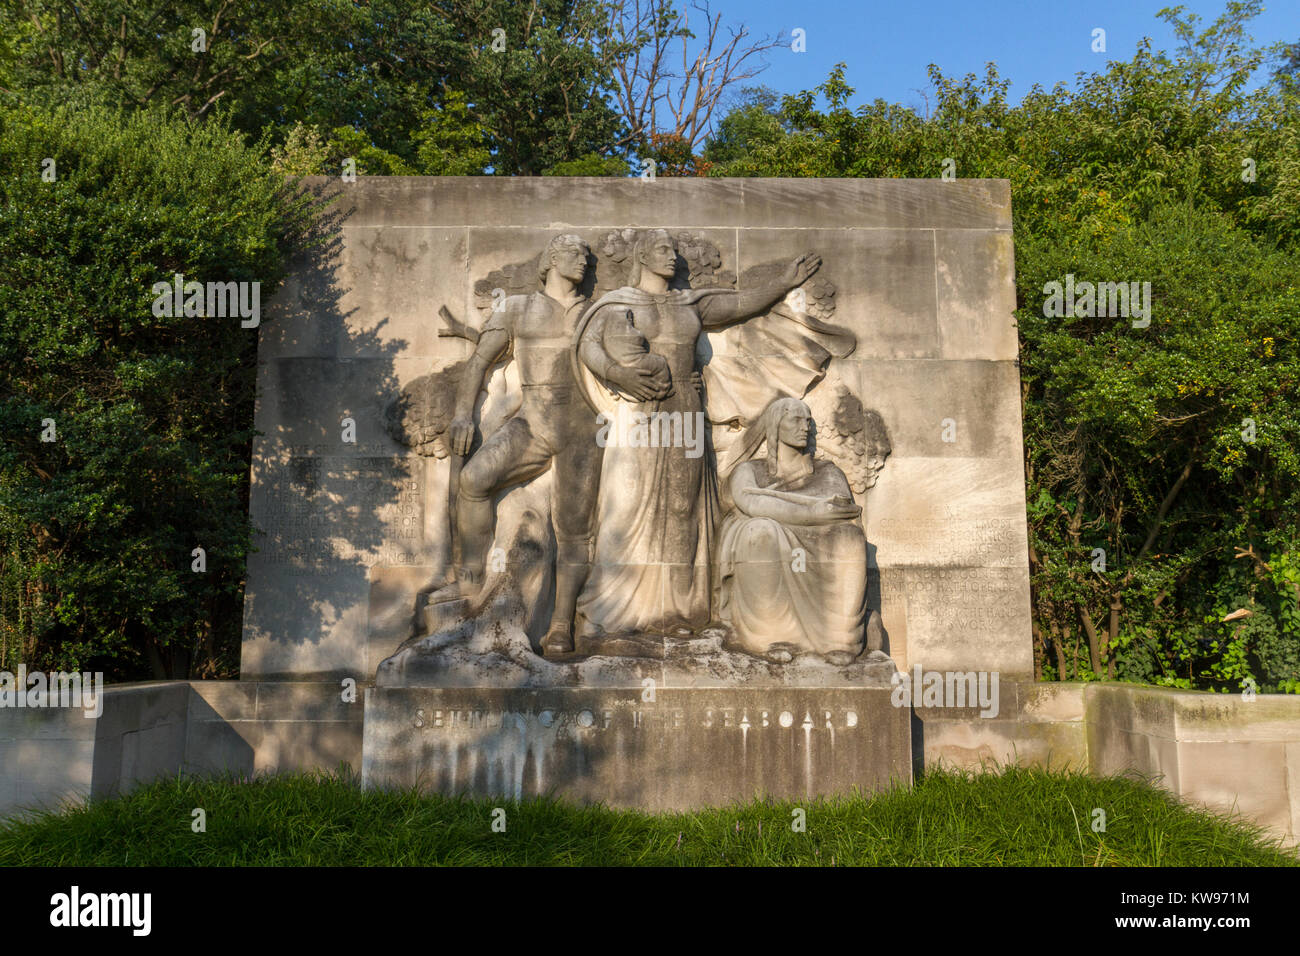 'Settling of the Seaboard' by Wheeler Williams (1942), part of the Ellen Phillips Samuel Memorial, Kelly - Stock Image